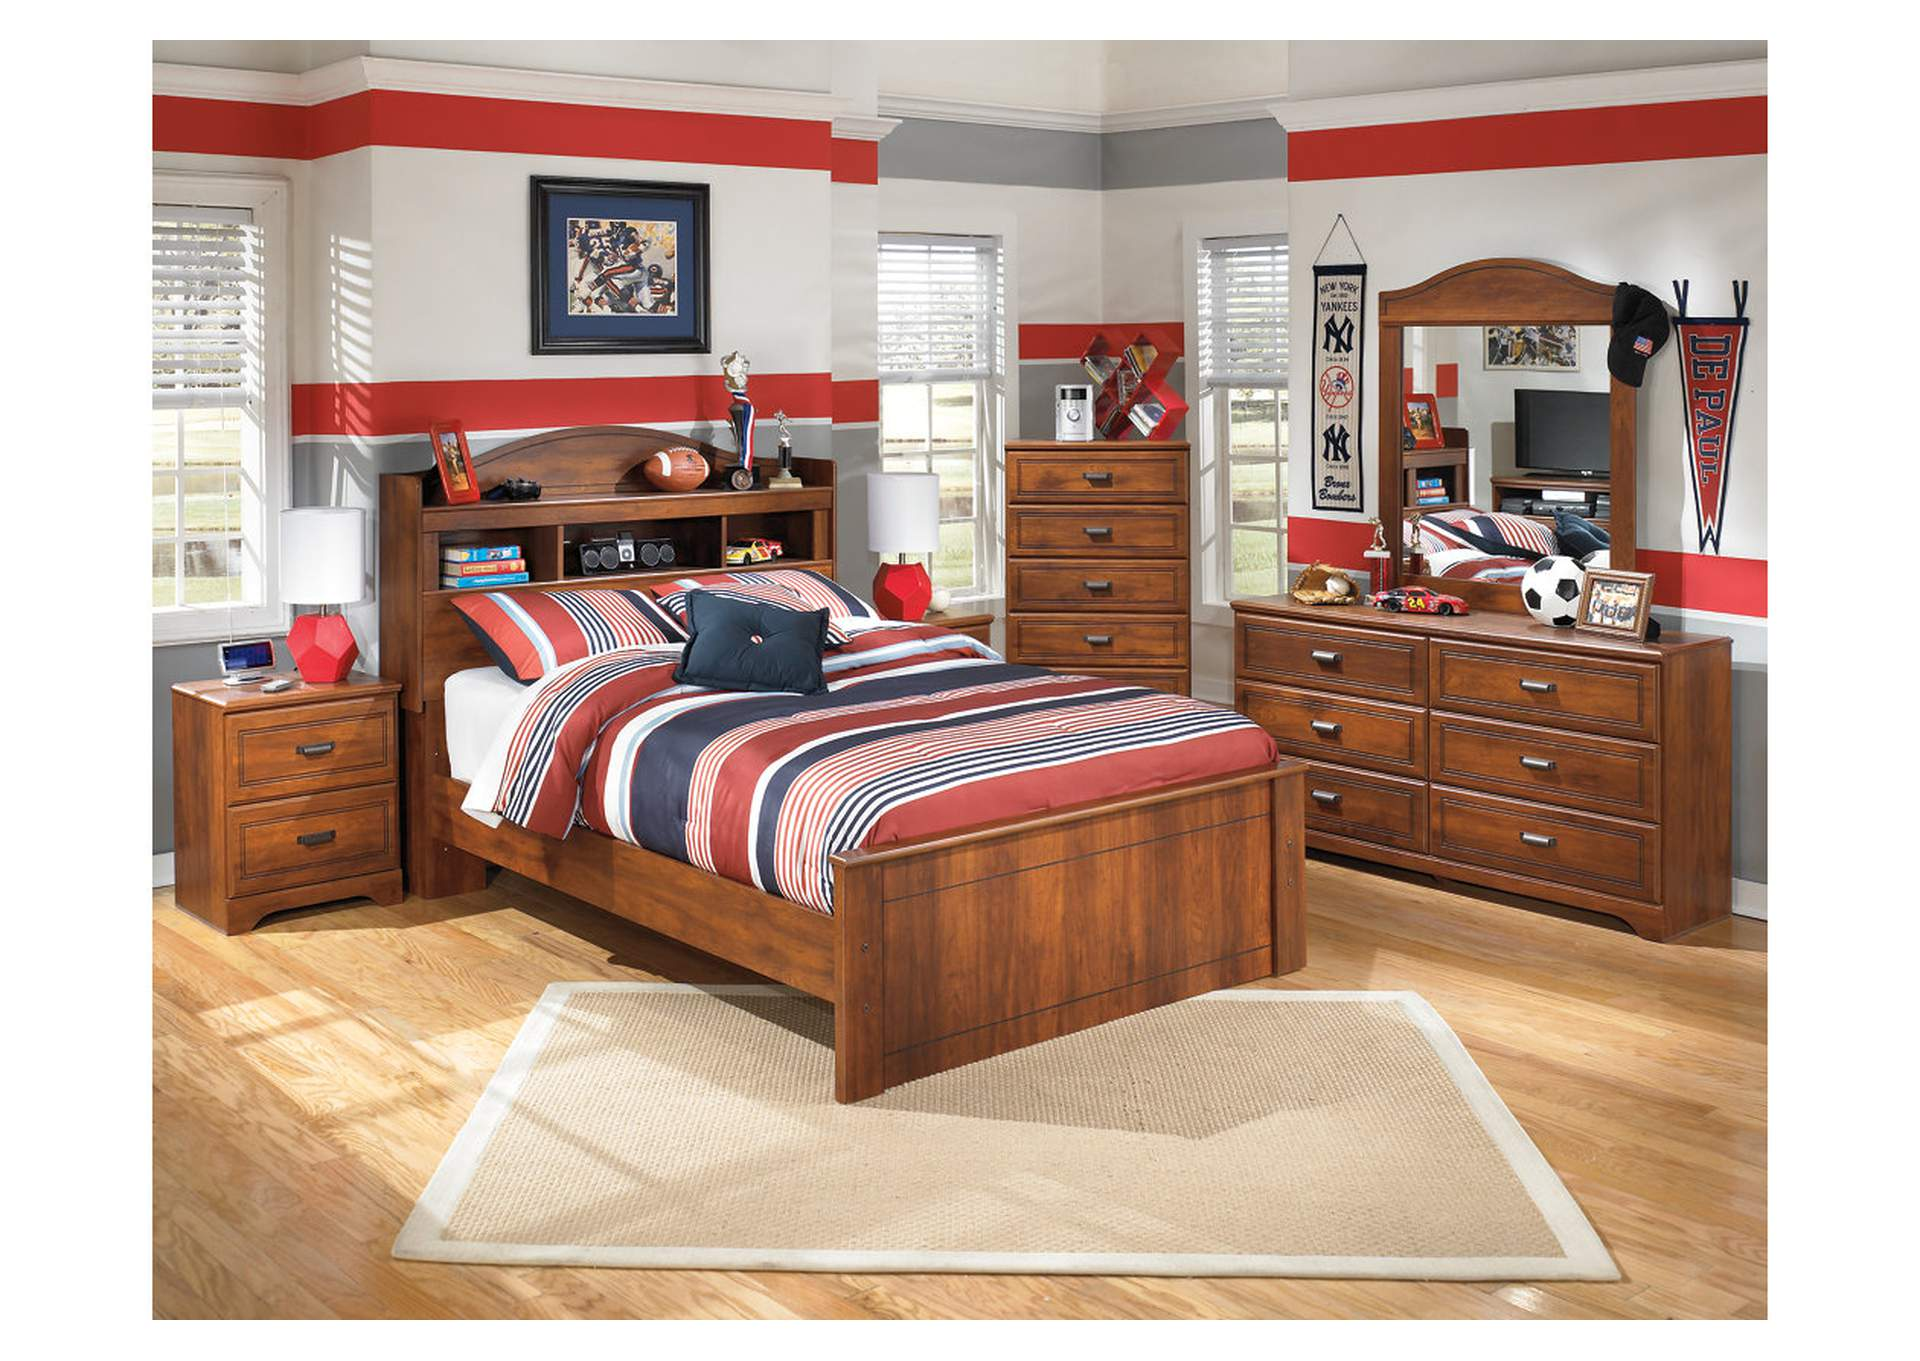 Barchan Full Bookcase Bed w/Dresser, Mirror & Drawer Chest,Signature Design by Ashley